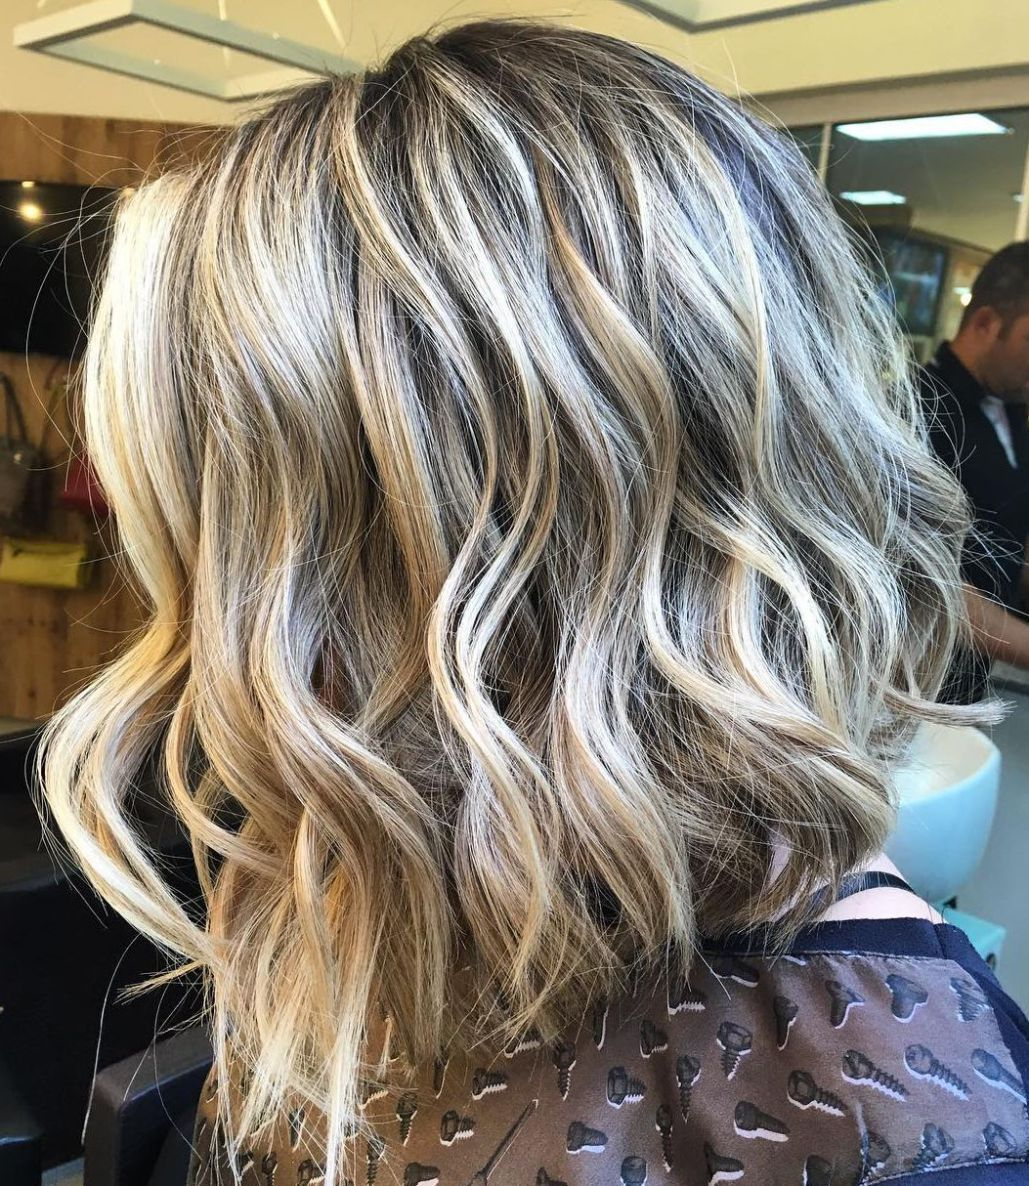 Blonde Lob For Thick Hair Thick Hair Styles Haircut For Thick Hair Thick Wavy Hair